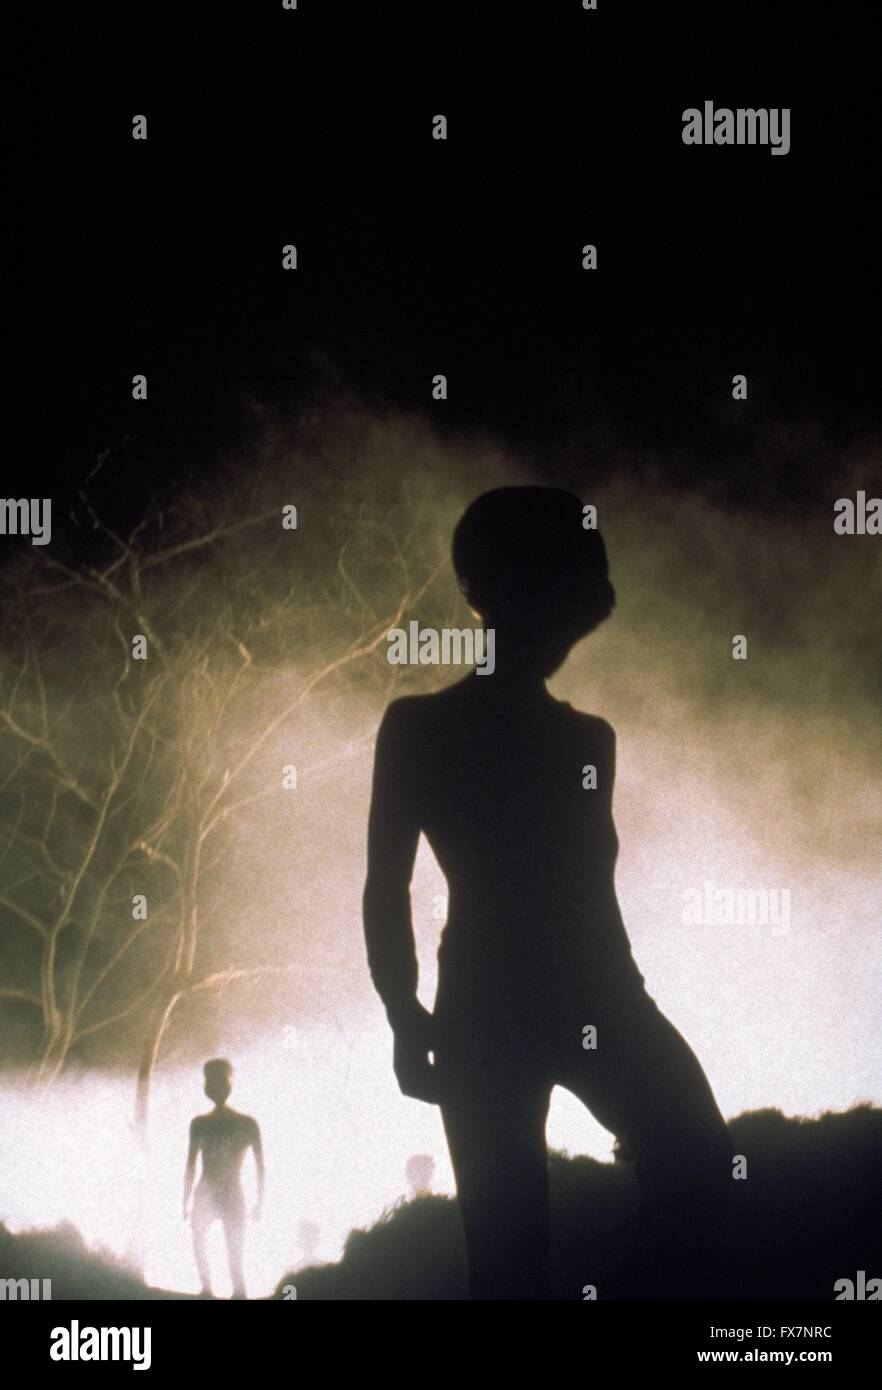 The X Files TV Series 1993 - 2002 USA 1996 Season 4 Created by Chris Carter - Stock Image